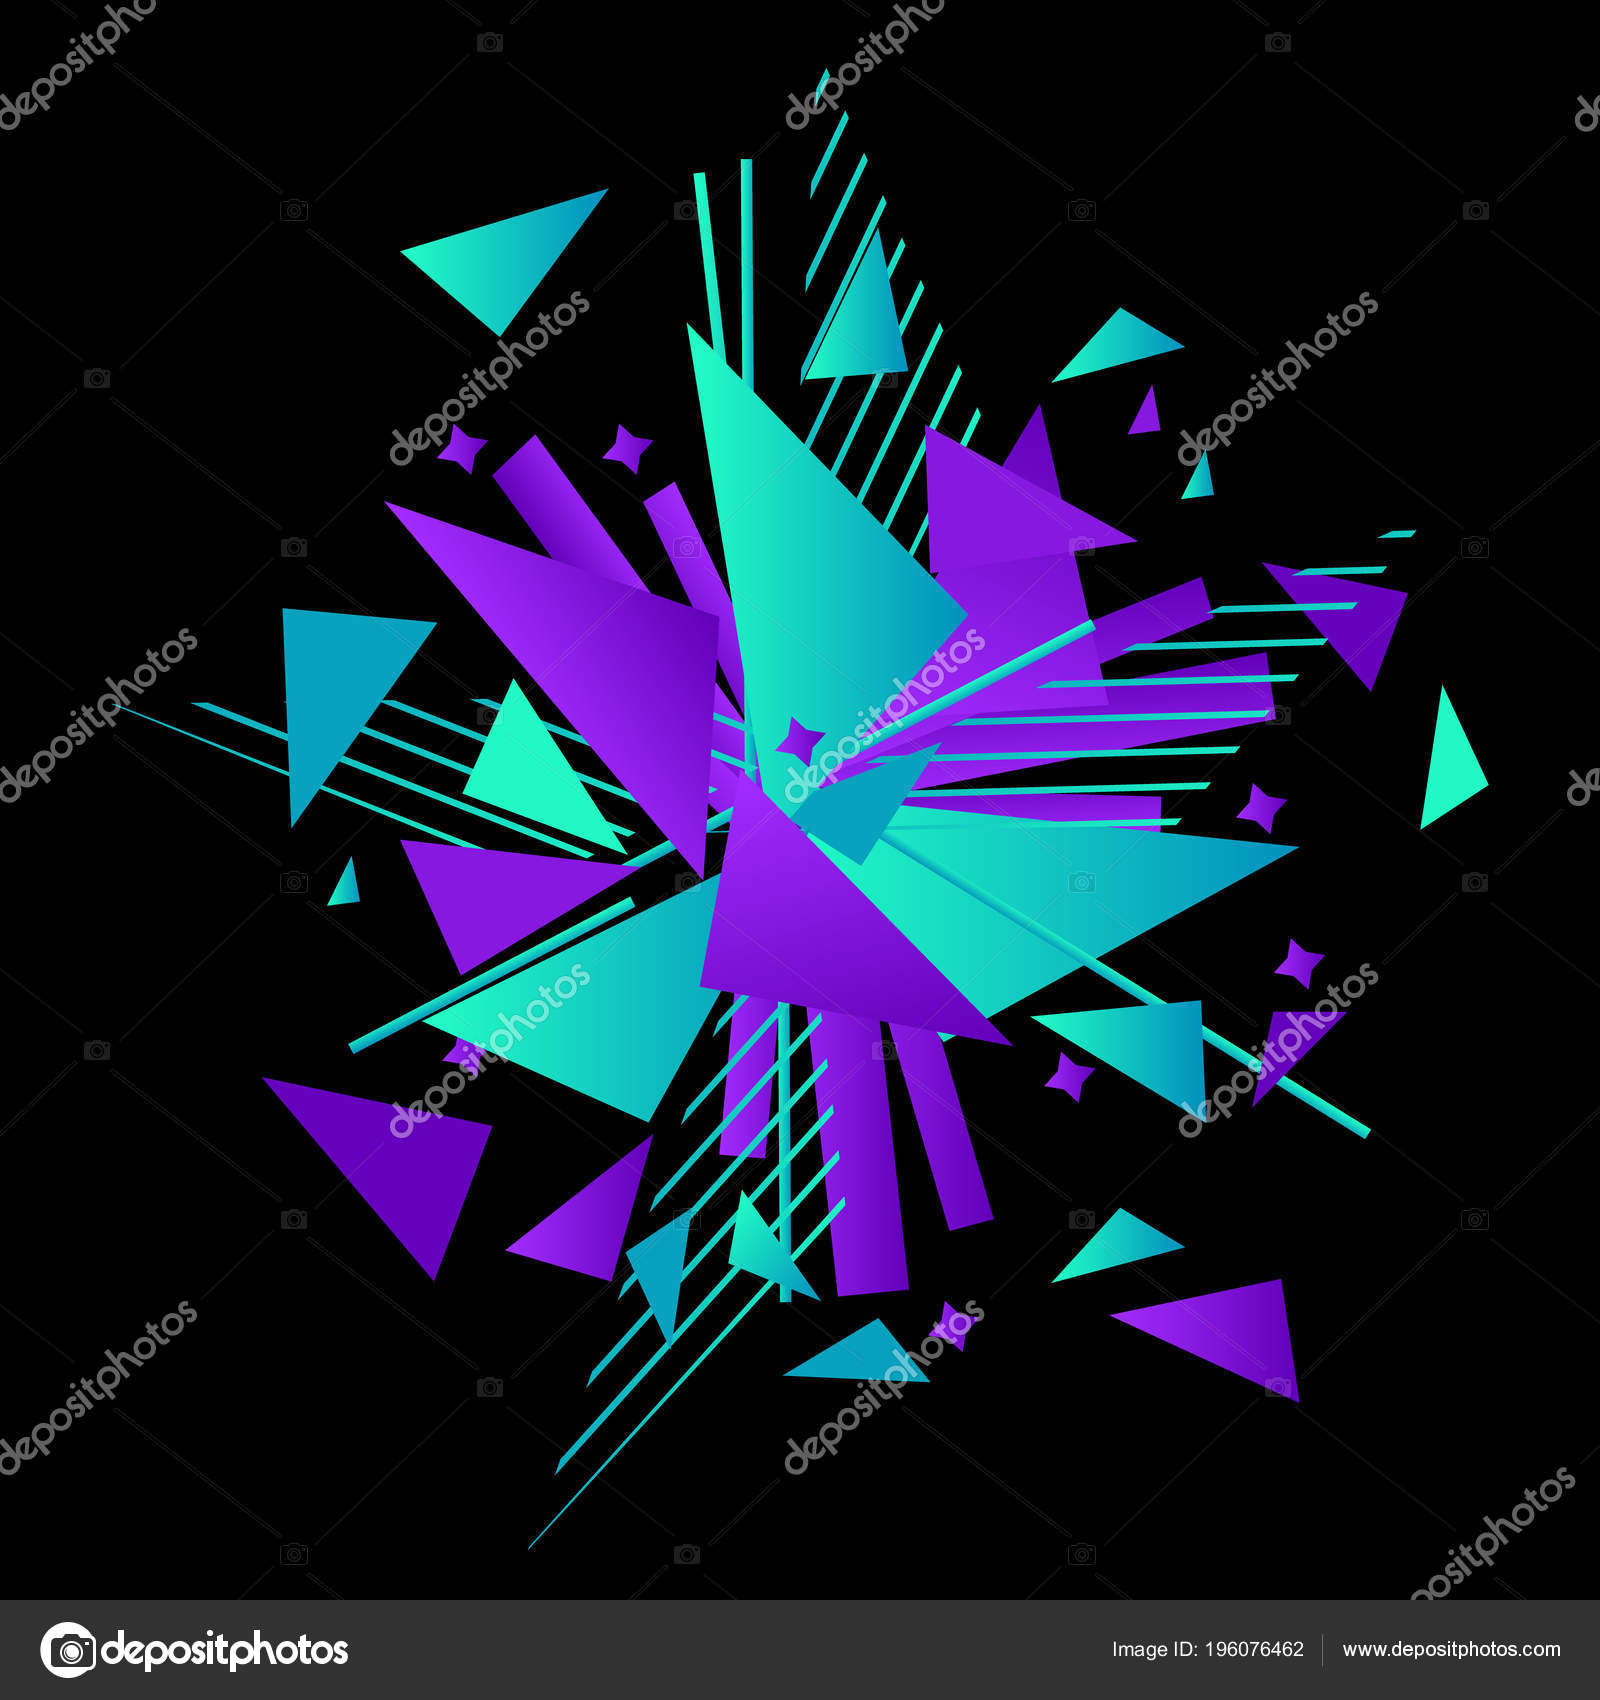 Vector Illustration Abstract Explosion Template Black Background ...